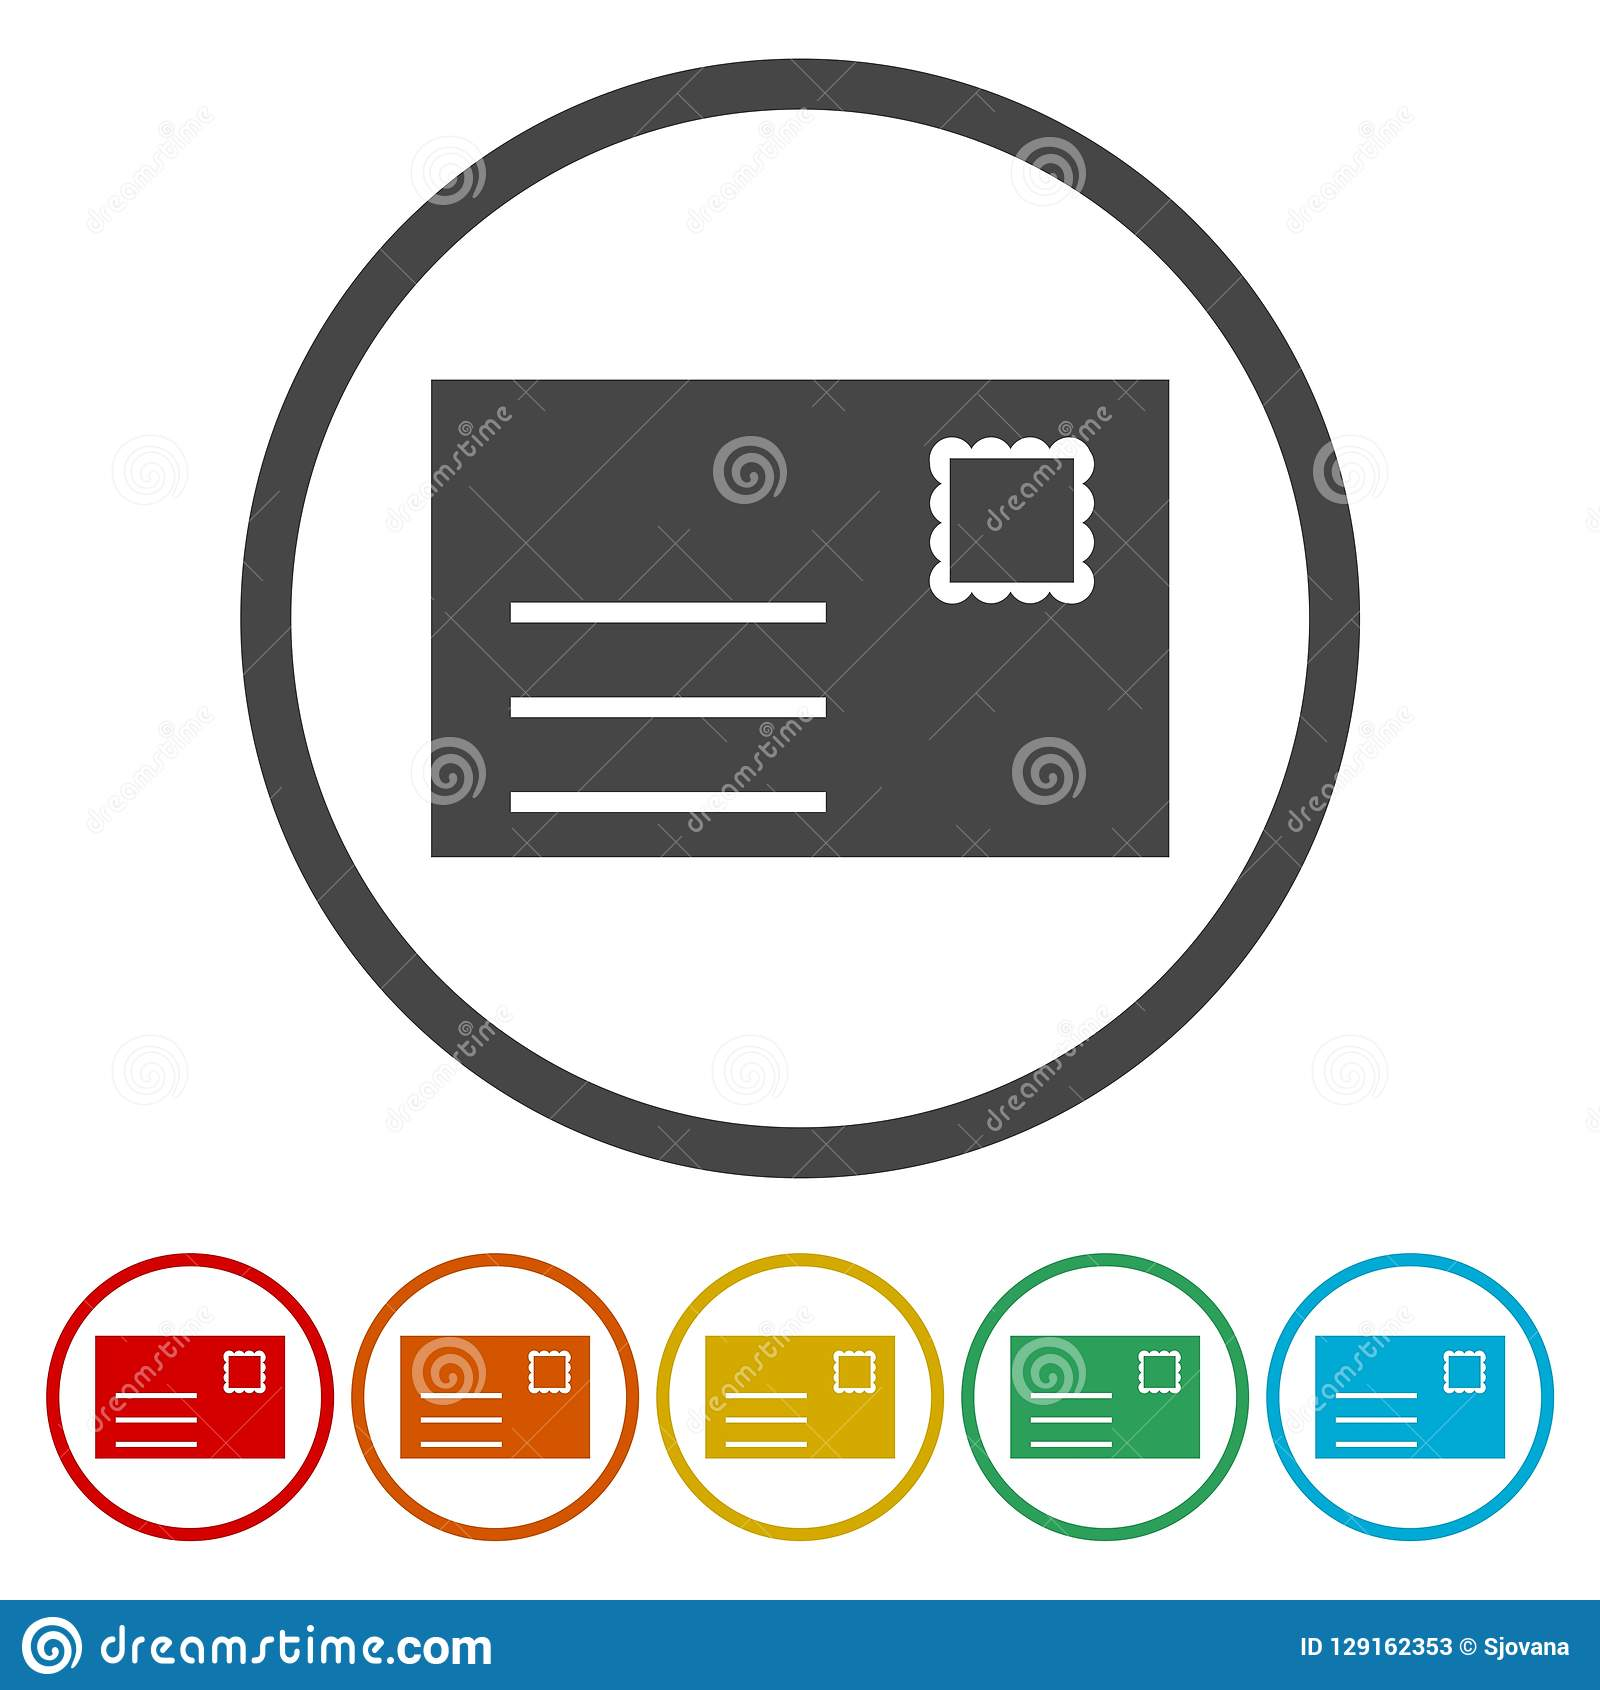 Email web flat design circle icon.Mail icon. Envelope symbol. Message sign.